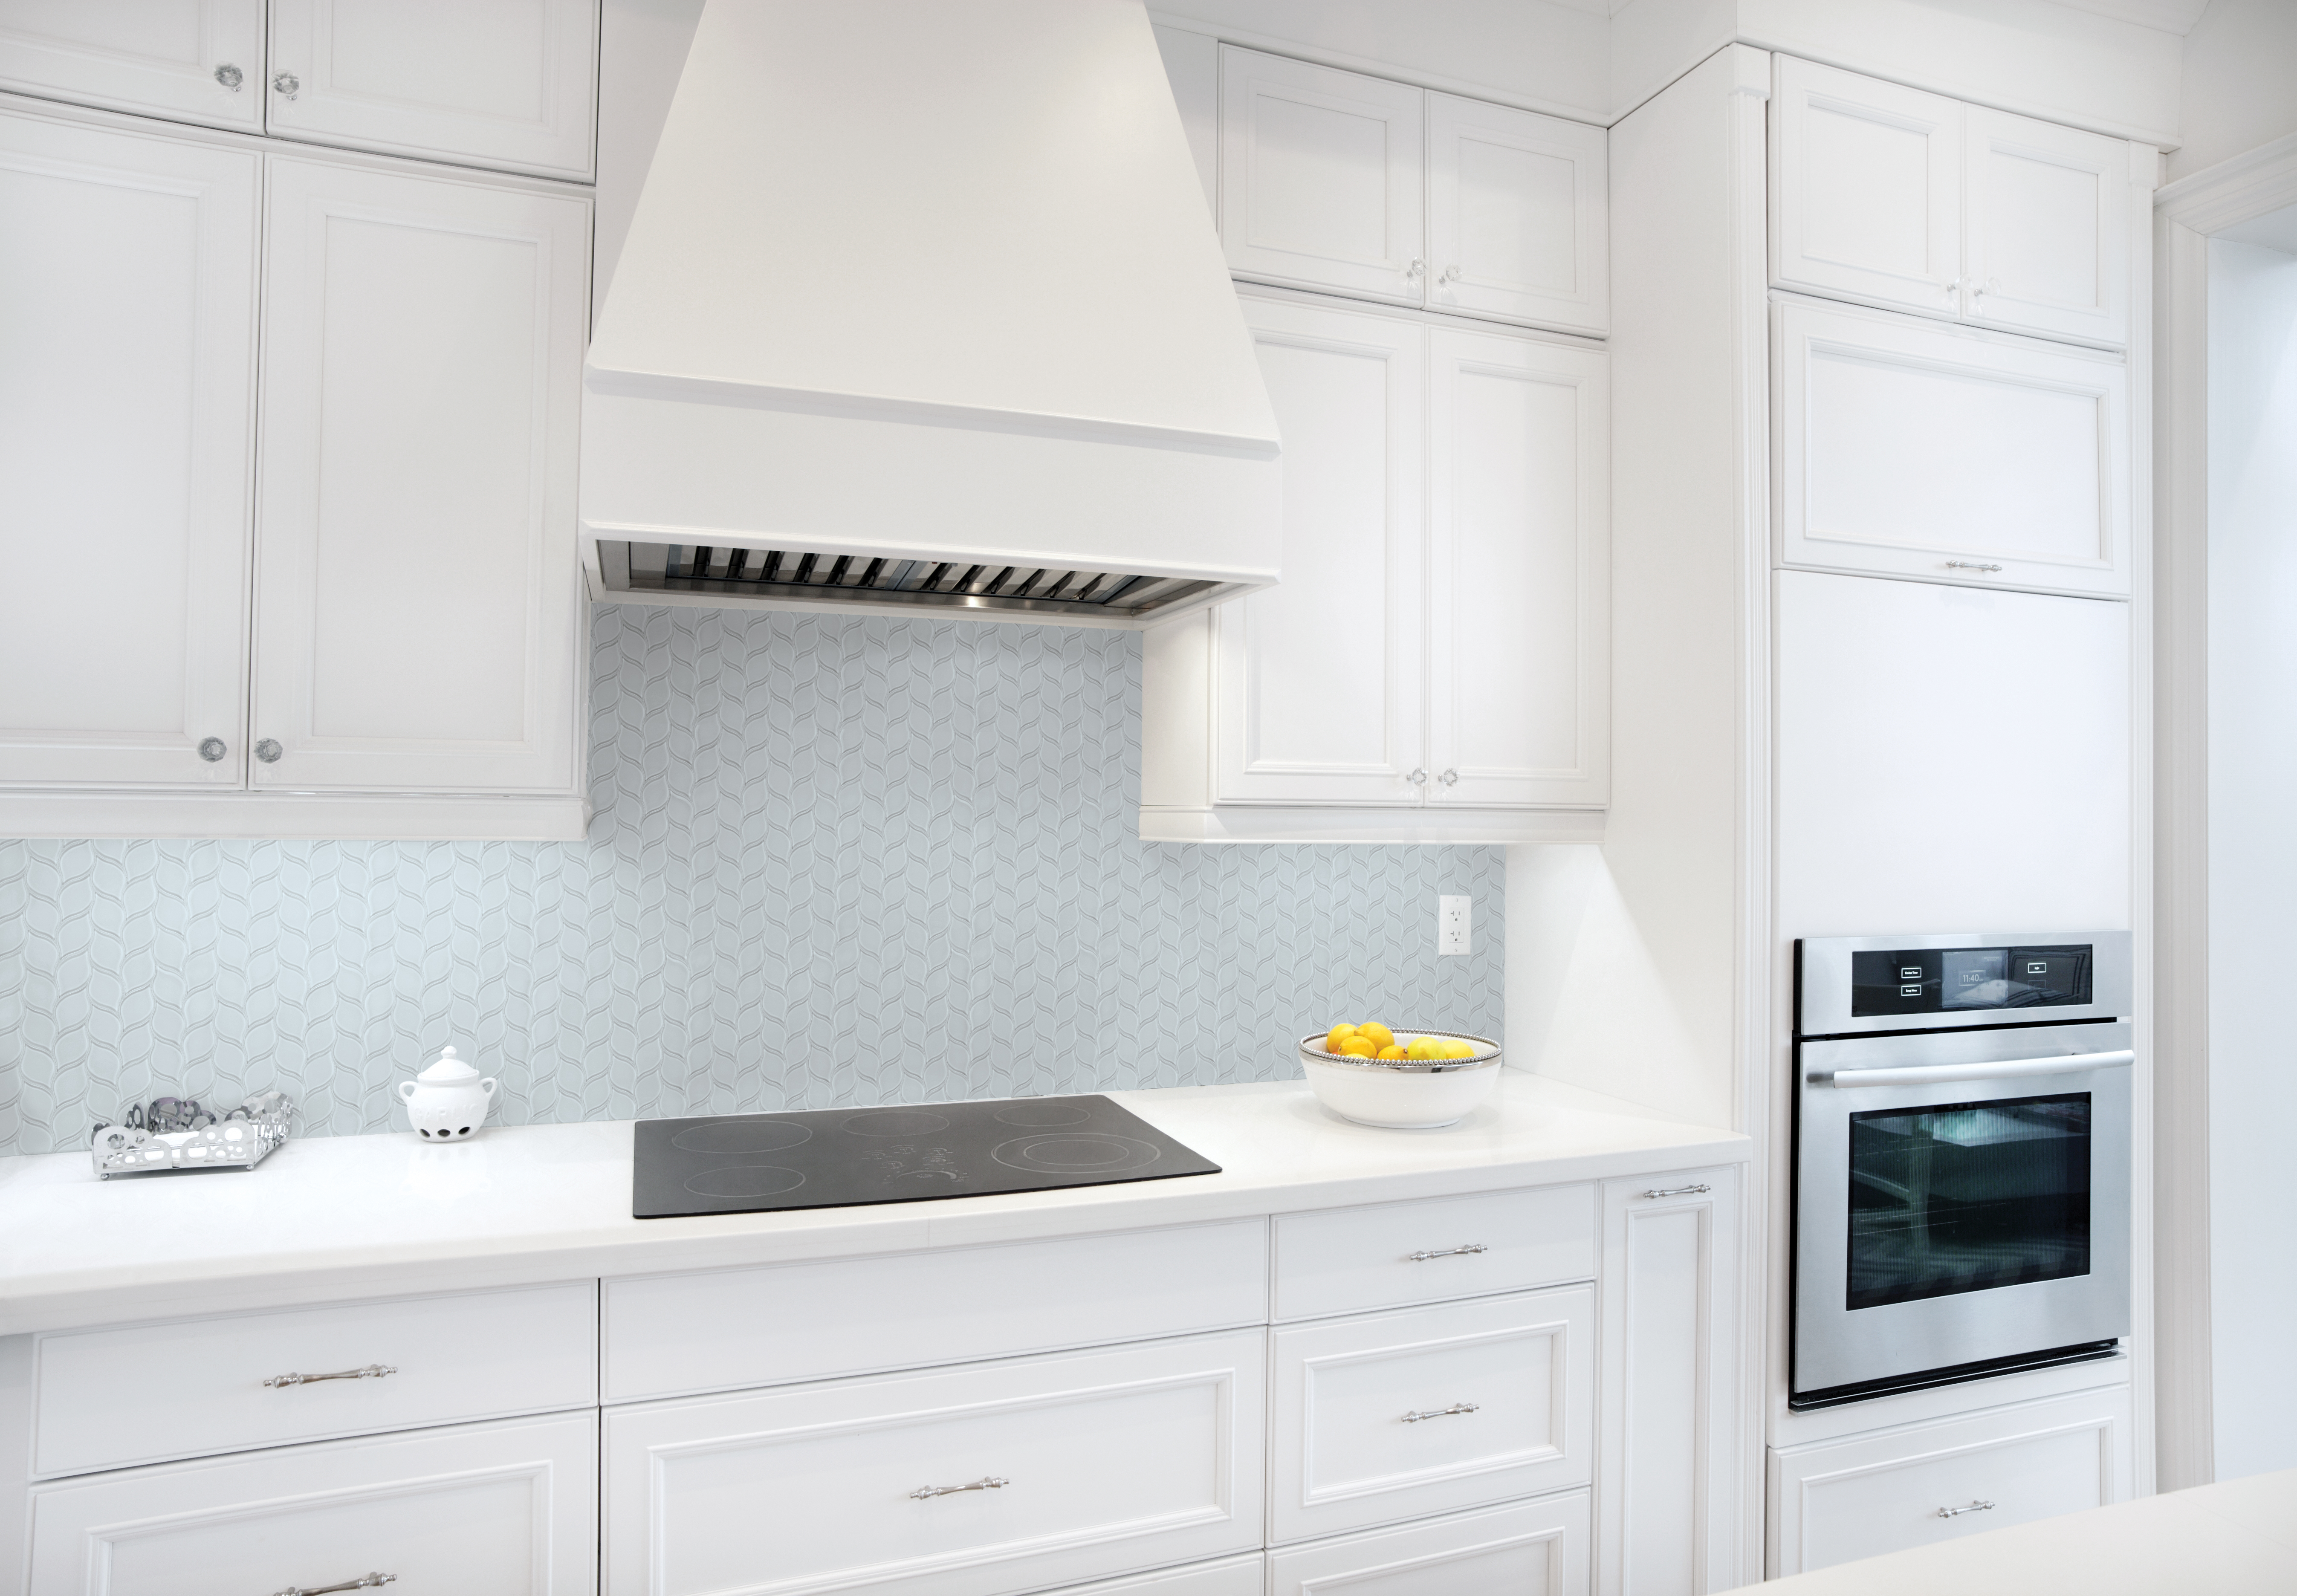 Tile tilecraft interior of modern luxury kitchen in north american private residence dailygadgetfo Choice Image